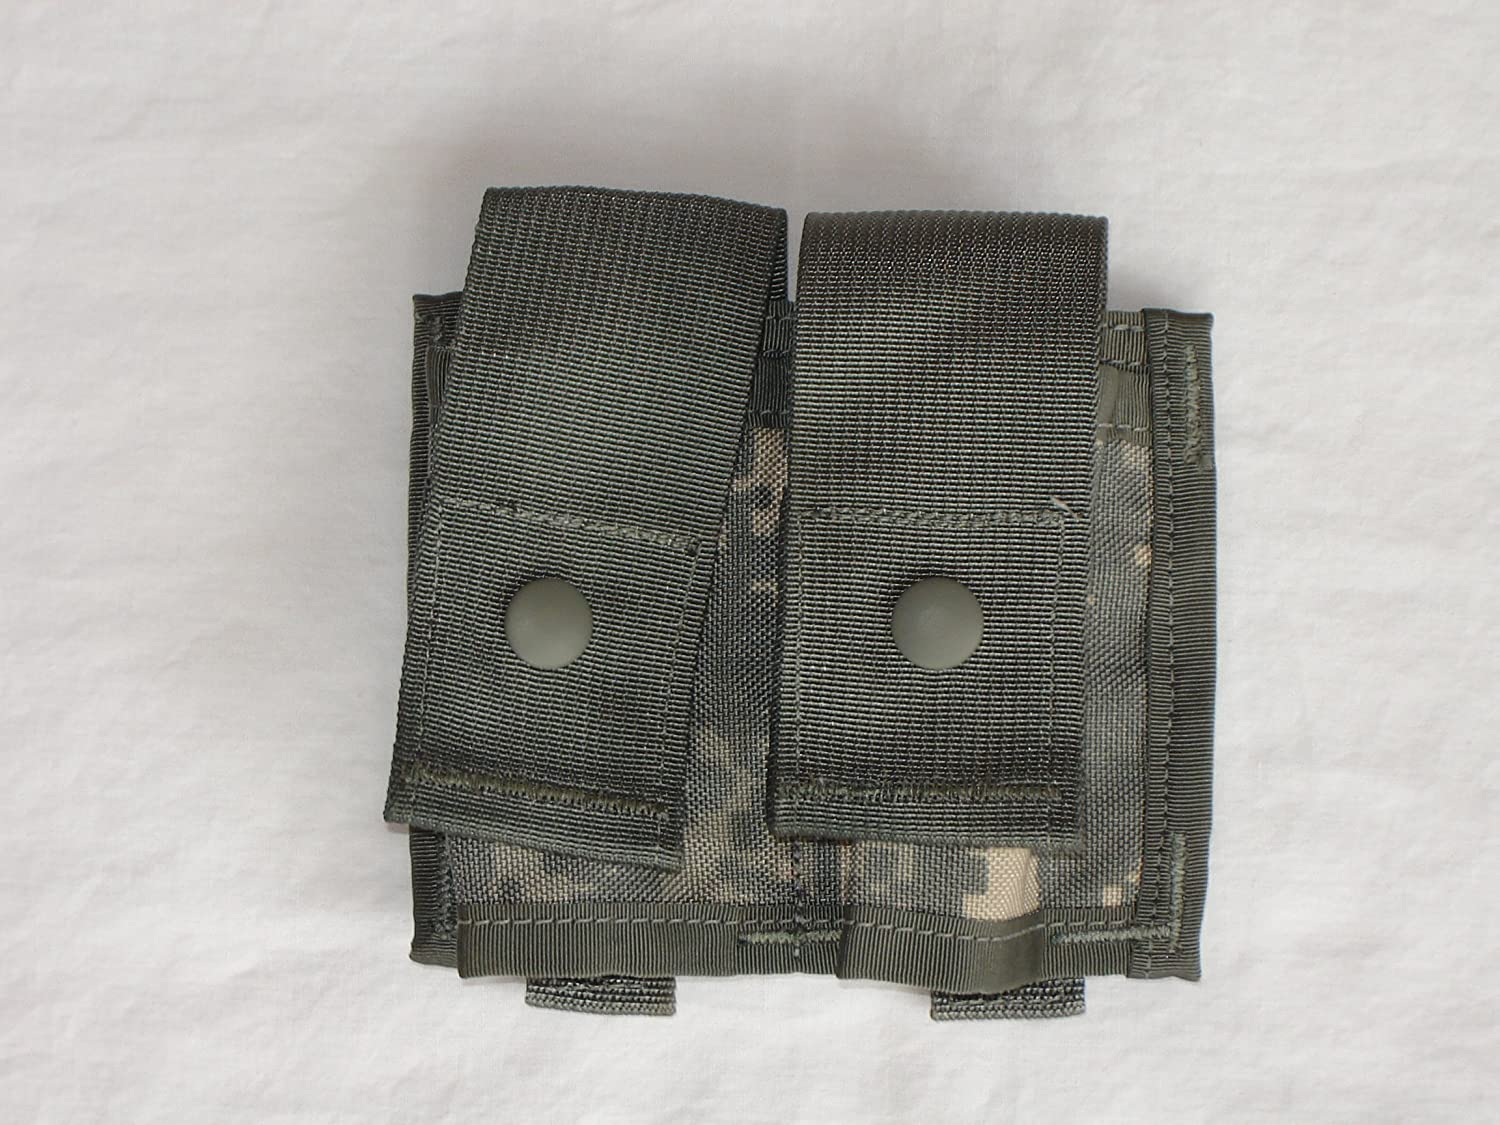 US Military MOLLE ACU SINGLE 40MM HE GRENADE POUCH USGI NEW